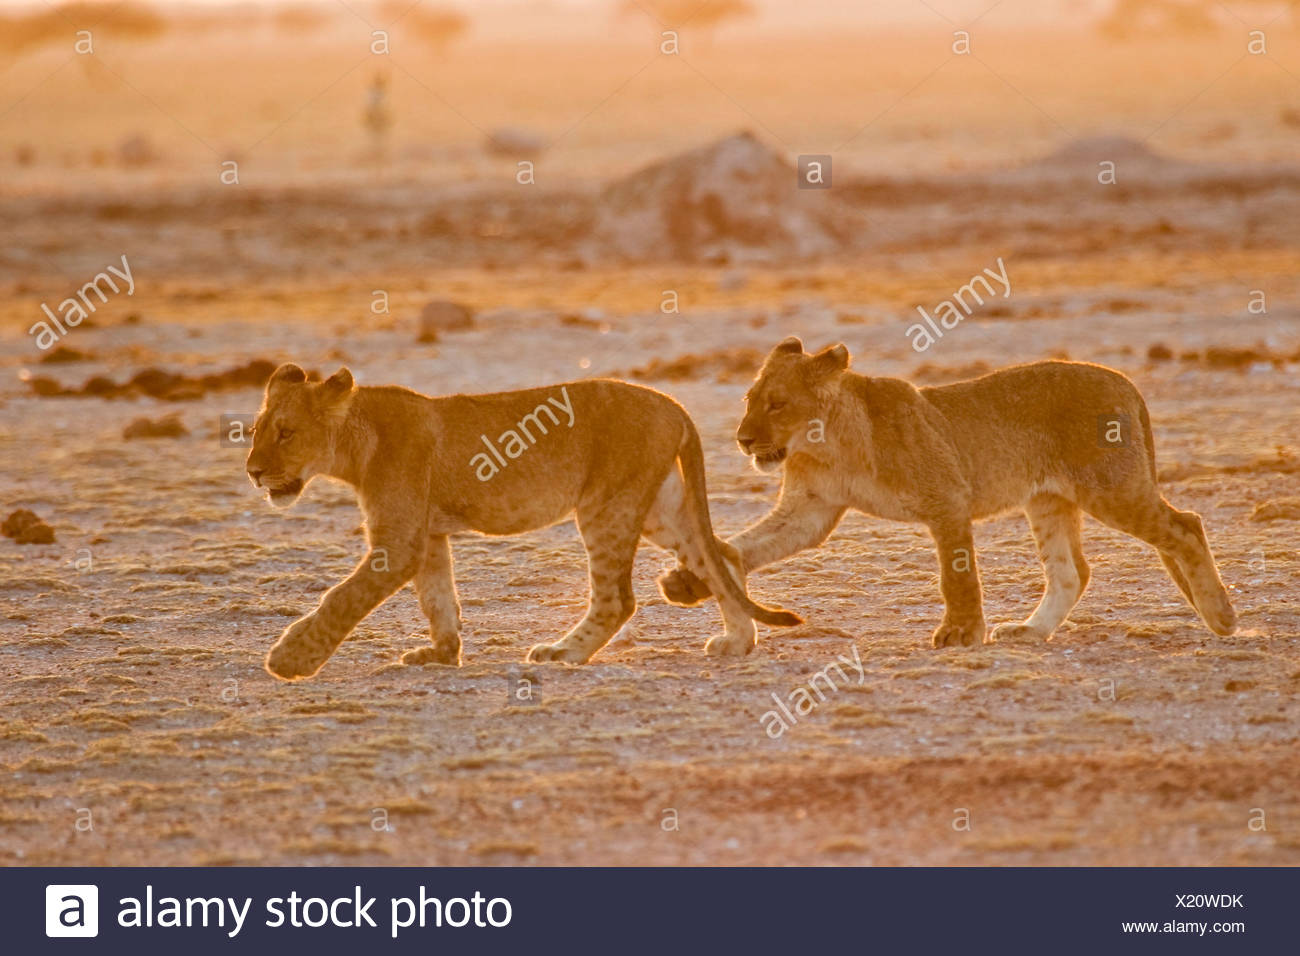 Lion cups (Panthera leo) Nxai Pan, Makgadikgadi Pans National Park, Botswana, Africa Stock Photo